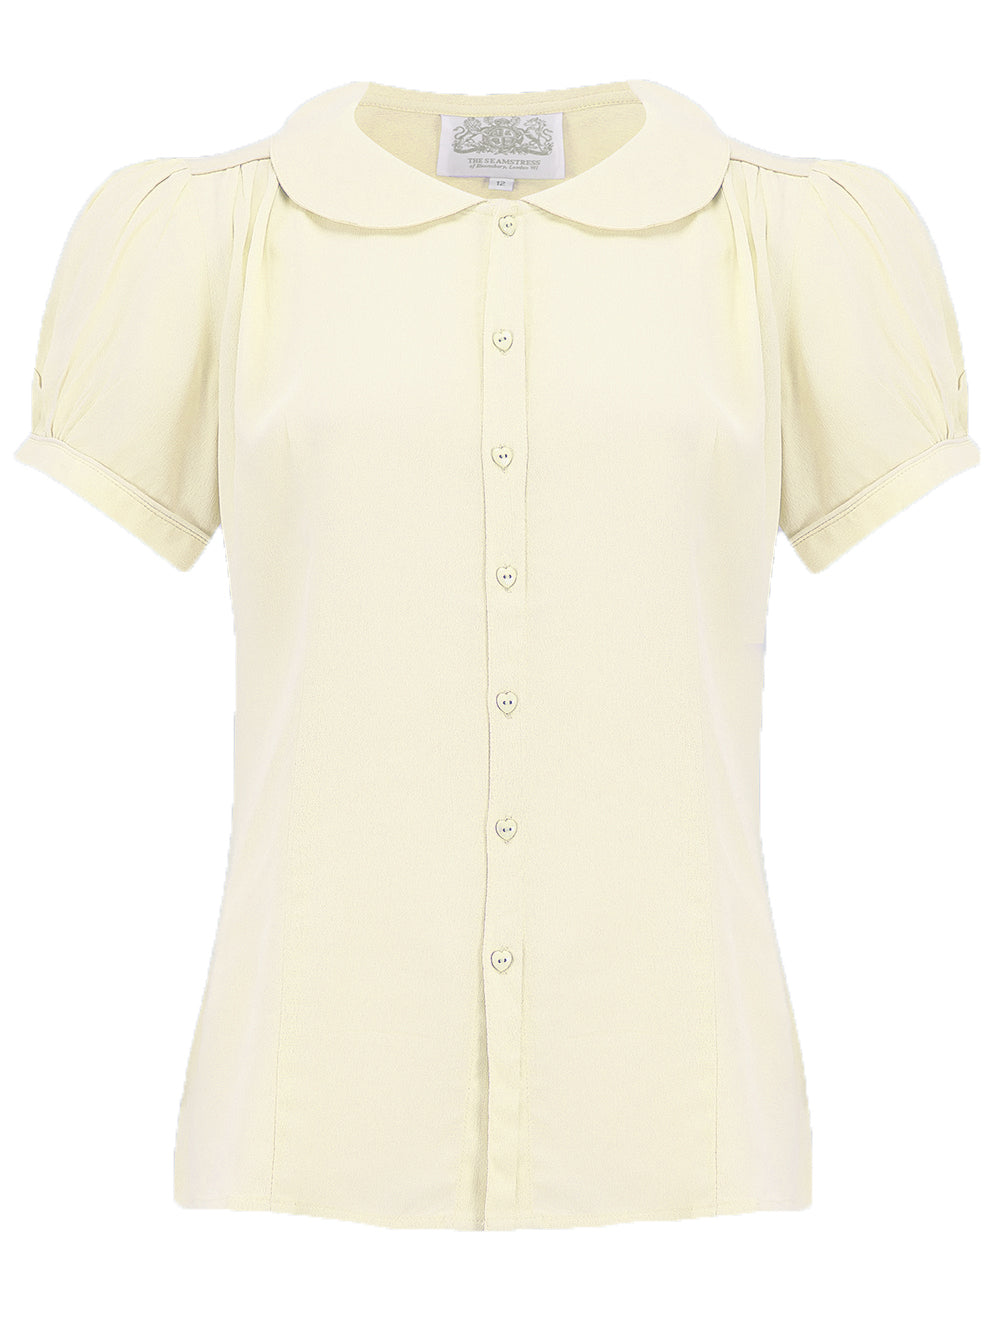 "The Seamstress Of Bloomsbury ""Jive"" Short Sleeve Blouse in Cream, Classic 1940s Vintage Inspired Style - RocknRomance Clothing"